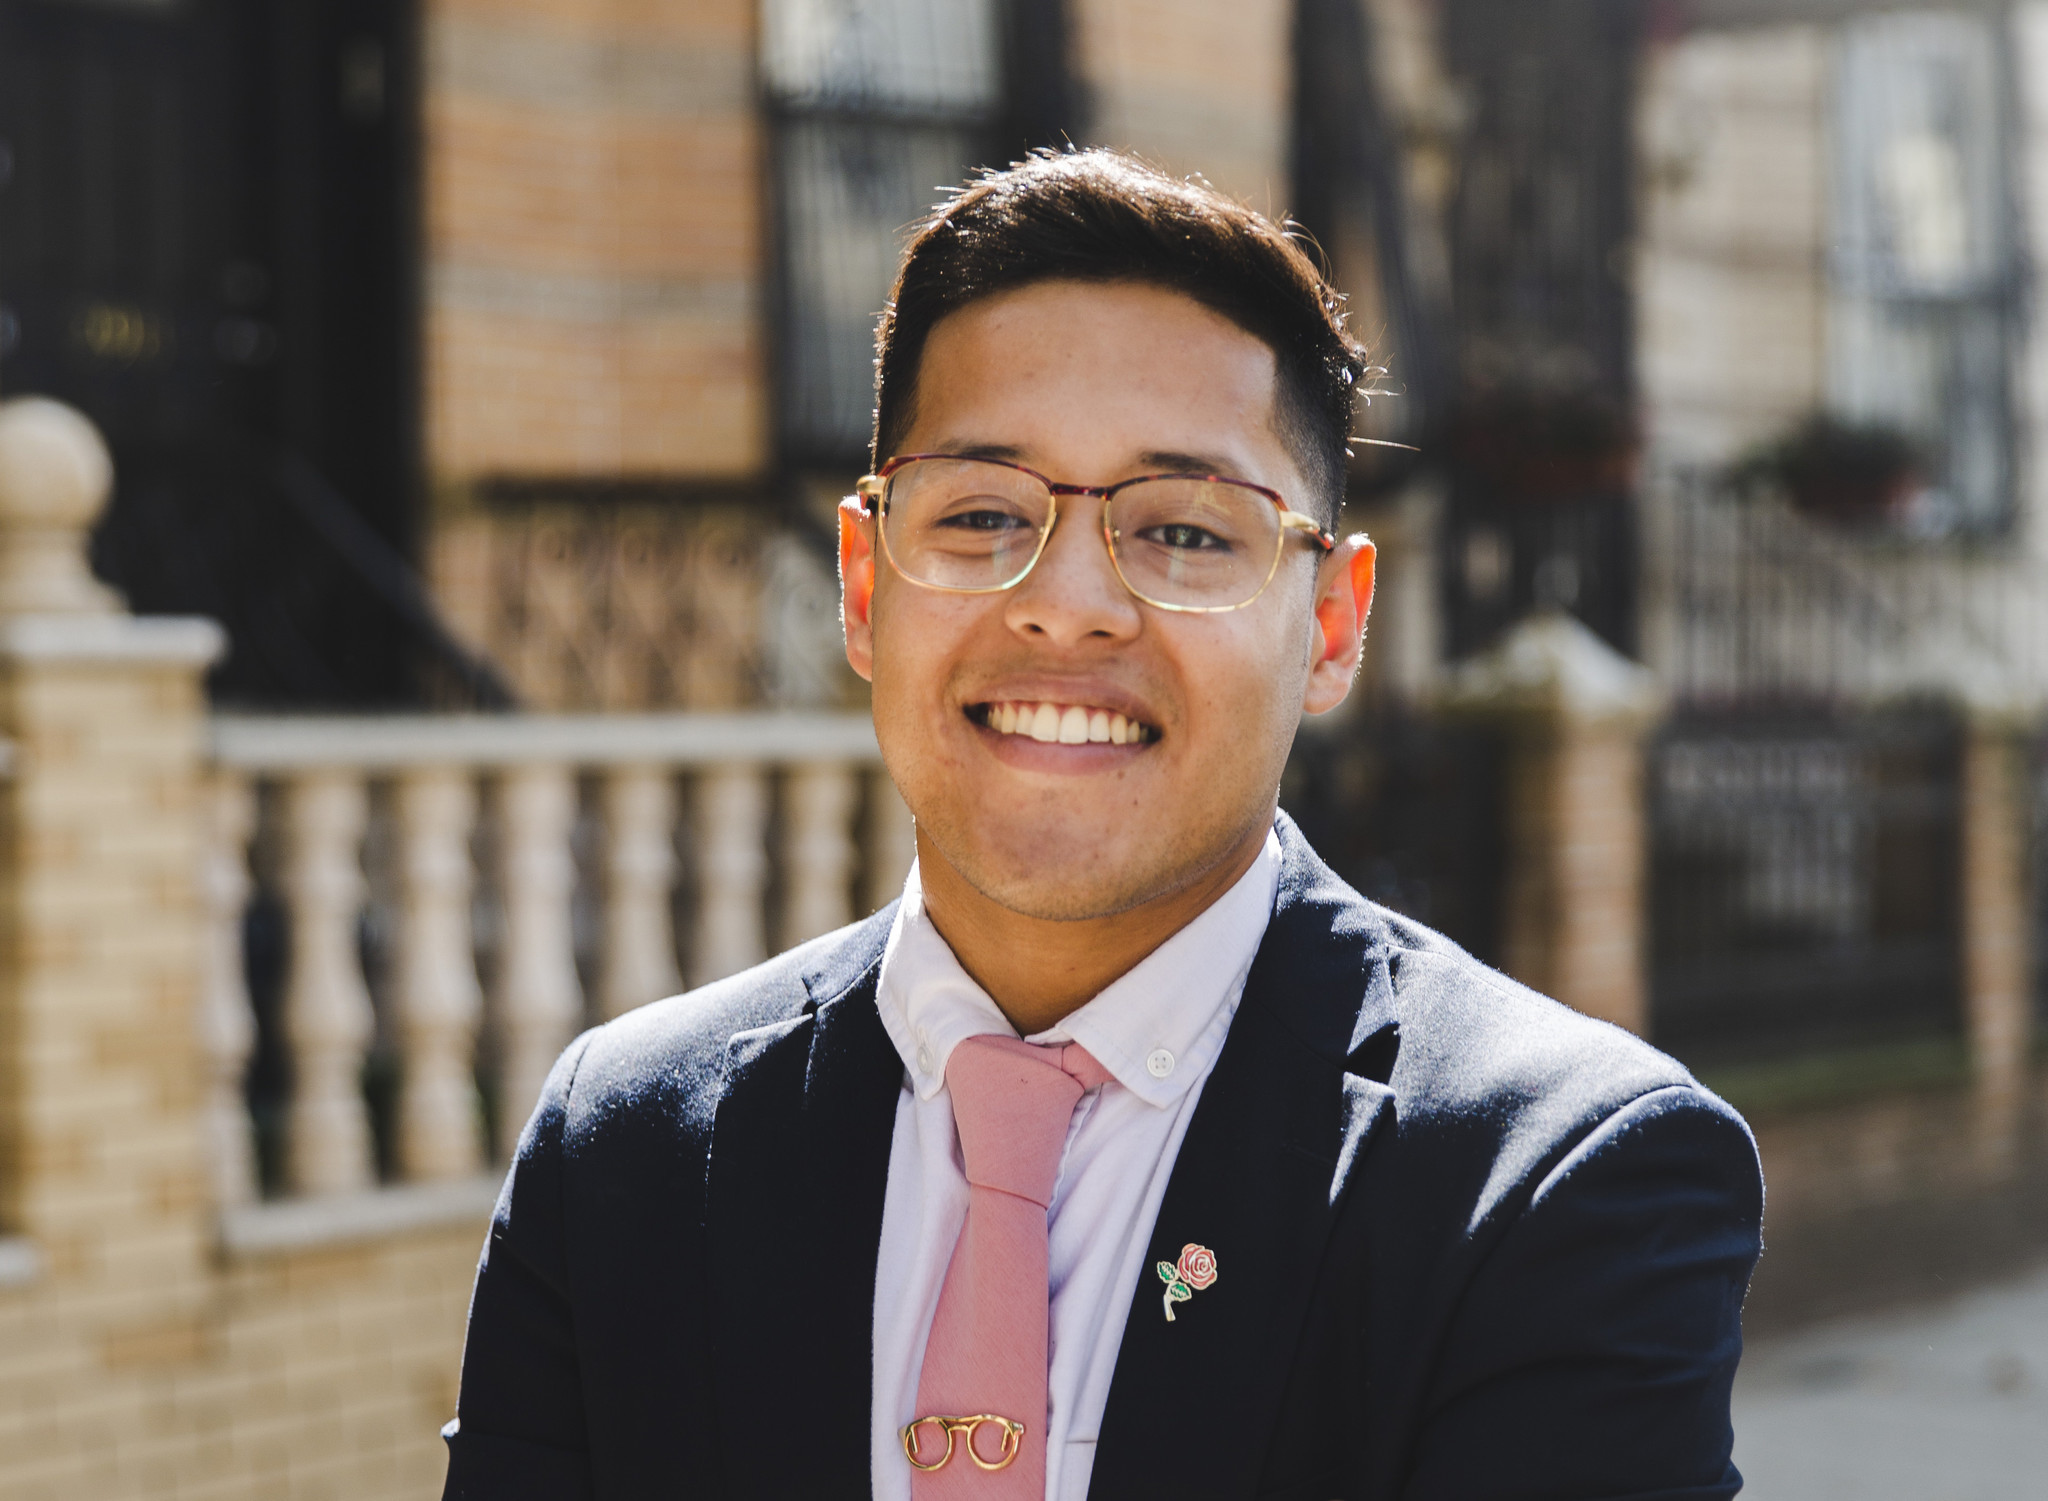 Socialists hoping to unseat Dems in Albany want to abolish private property